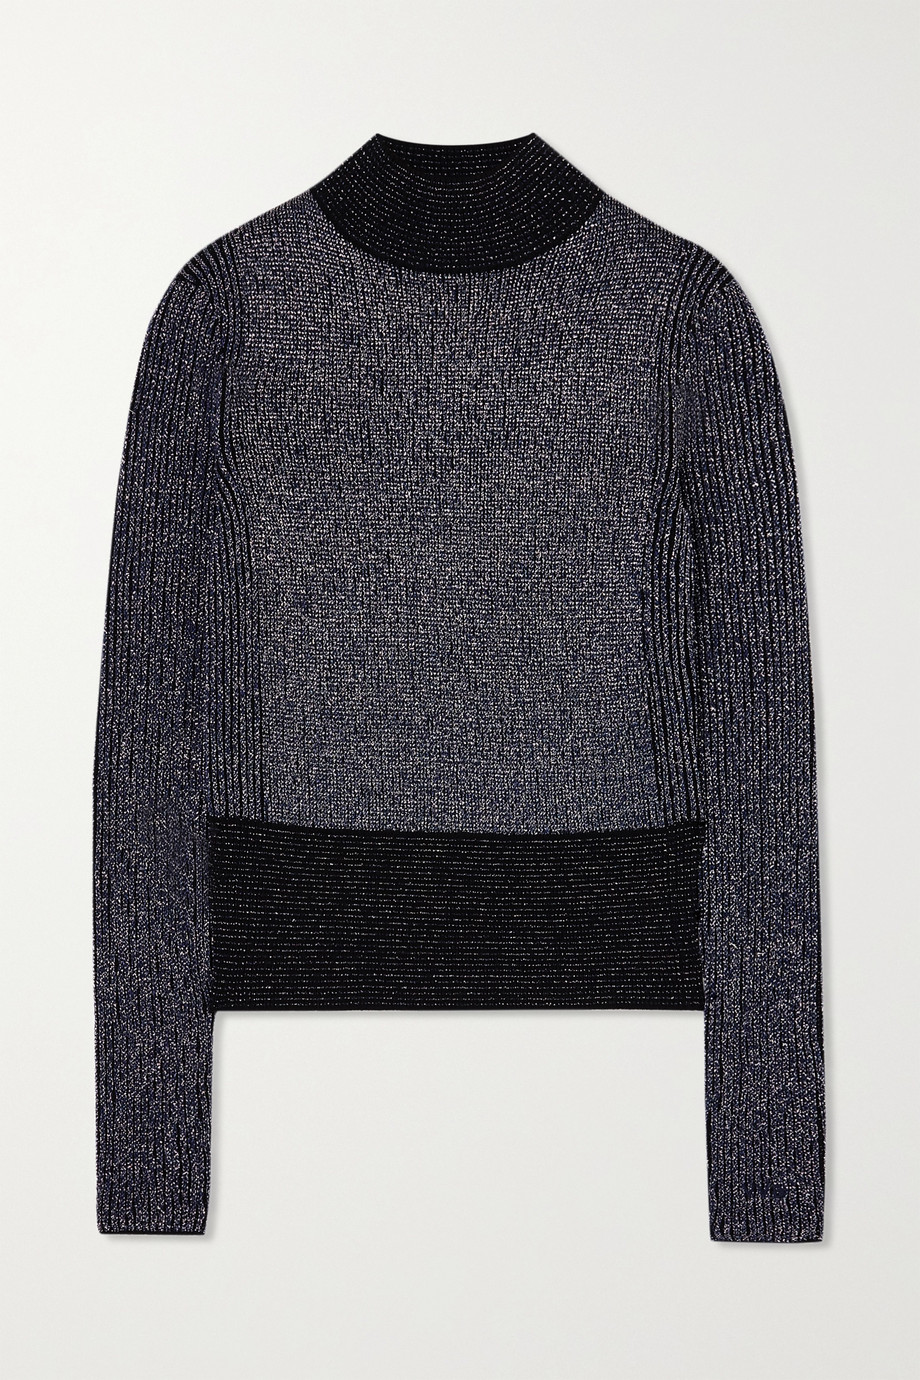 Victoria, Victoria Beckham Ribbed metallic wool-blend sweater